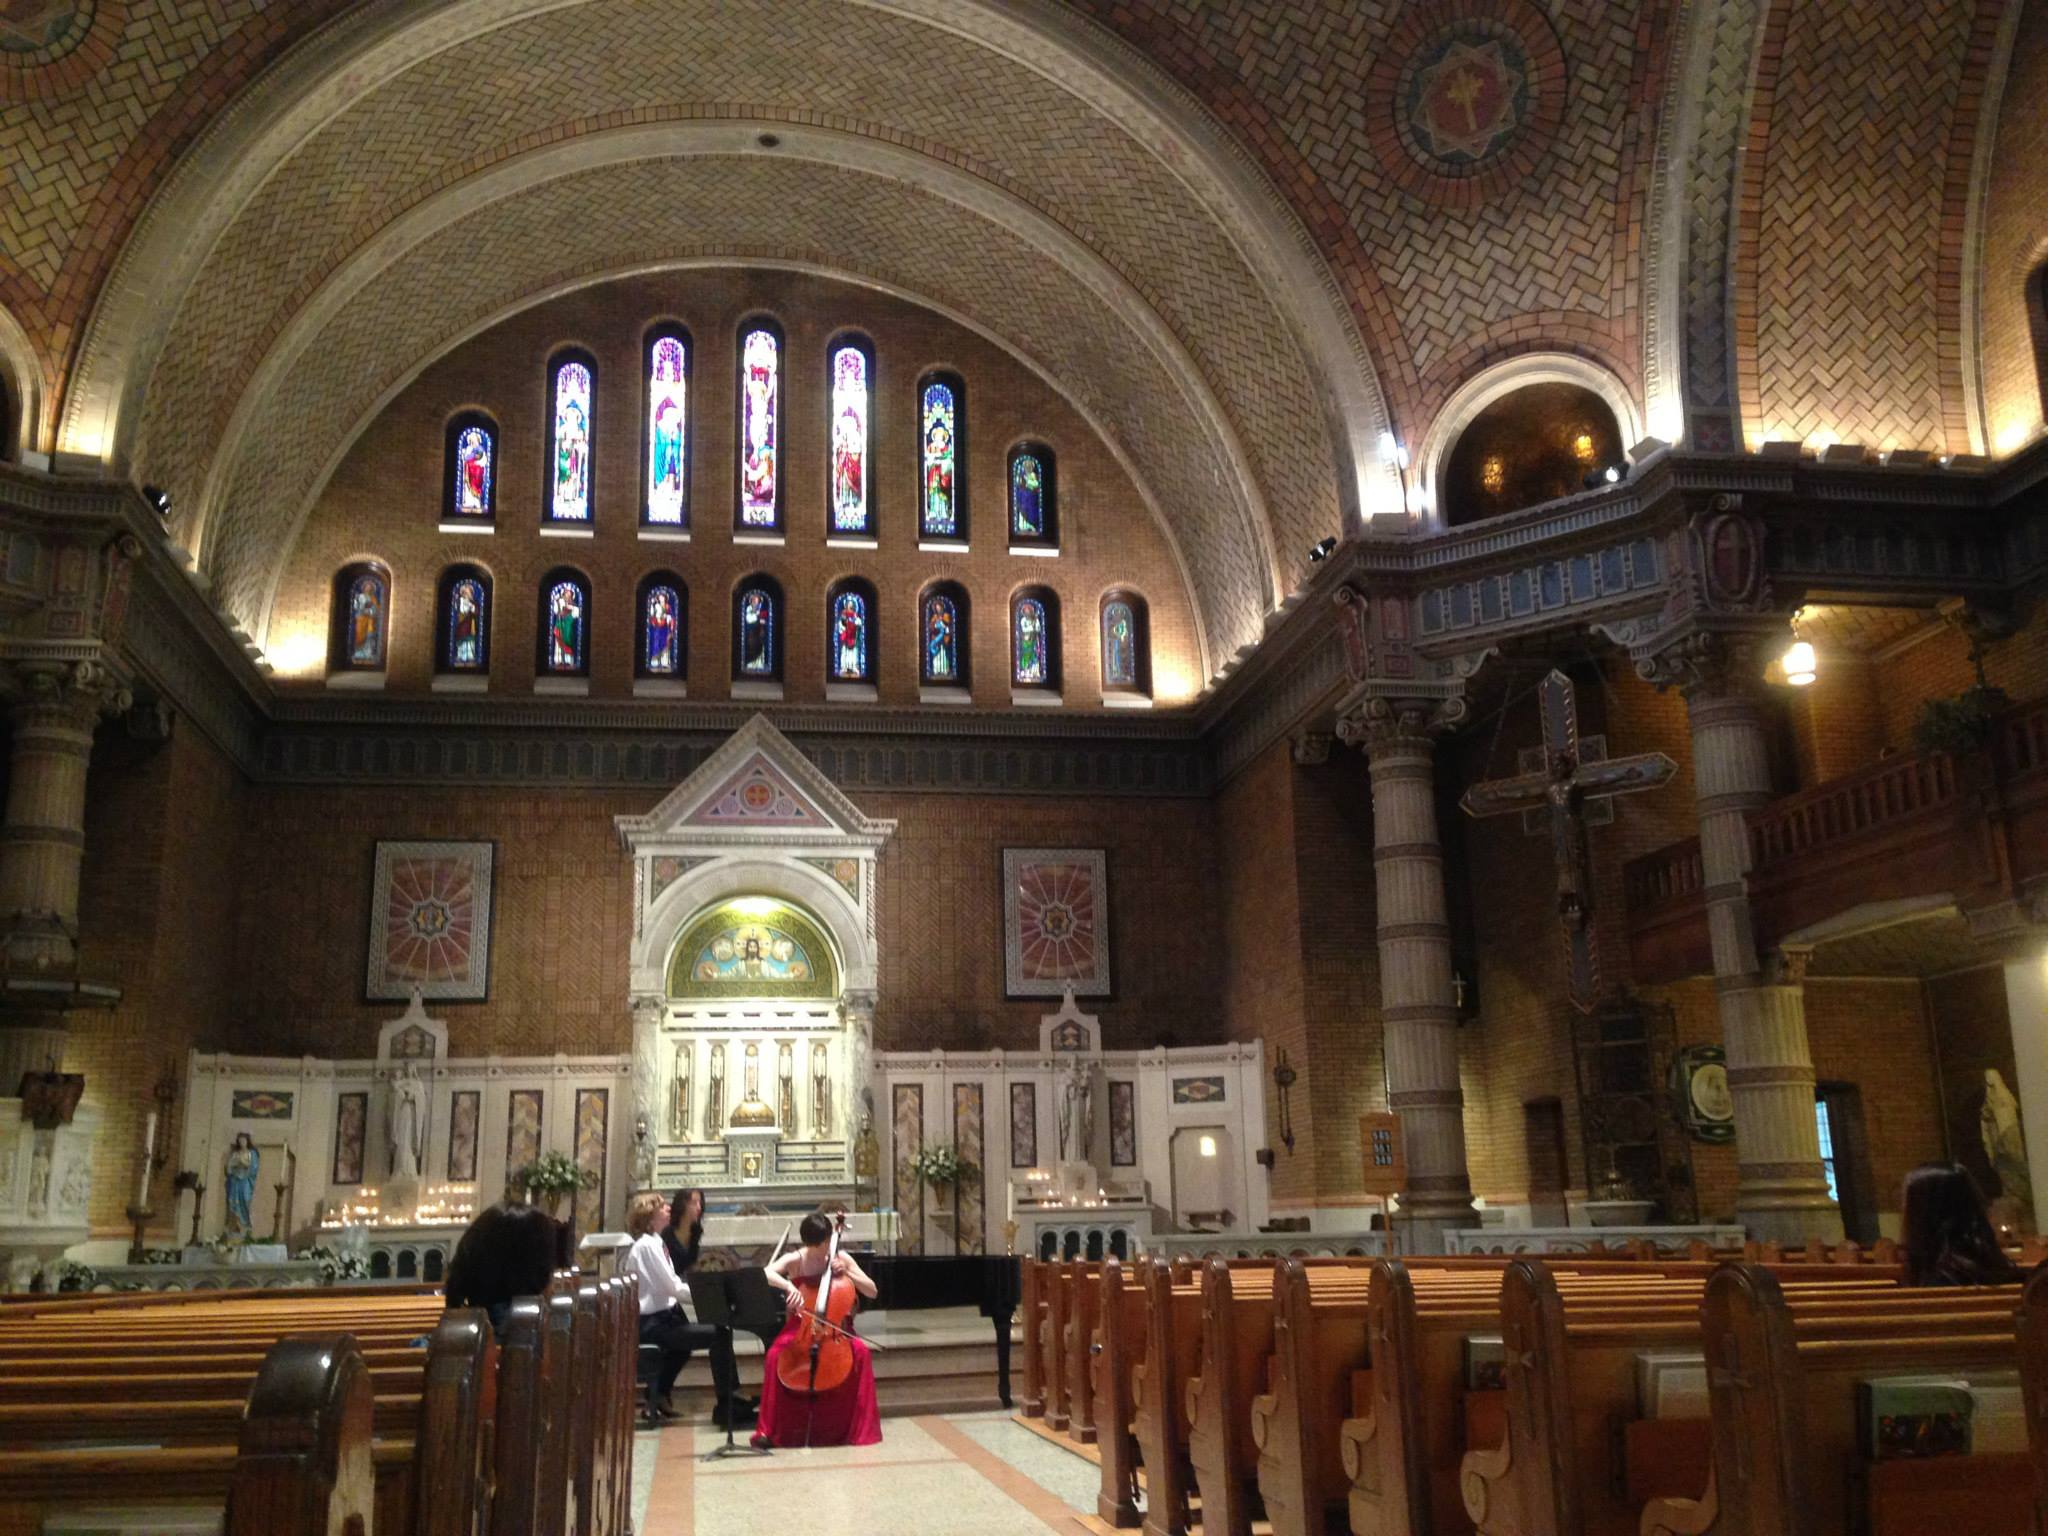 Church of the Holy Trinity (New York, NY)